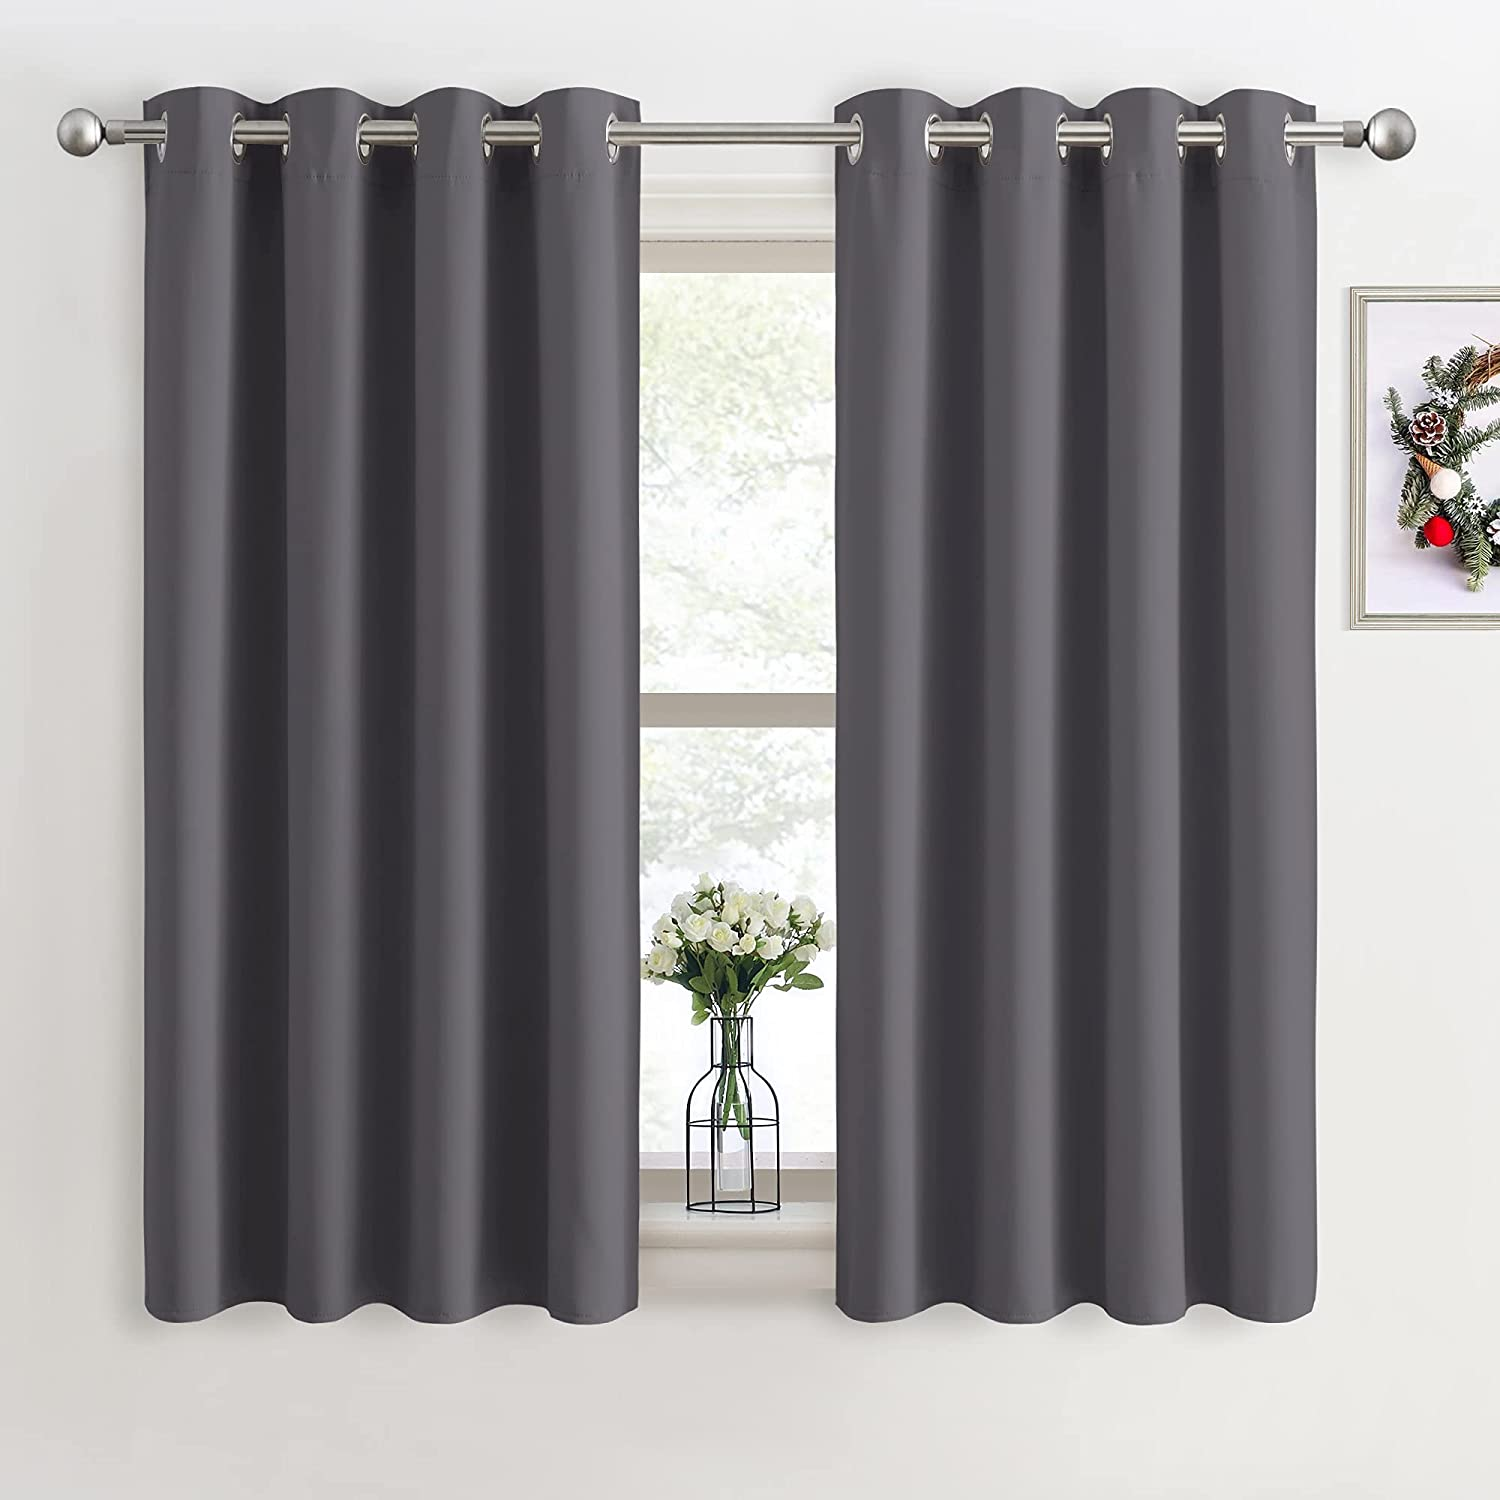 """PONY DANCE Grey Blackout Curtains - Super Soft Curtains for Bedroom Eyelet Curtains 46 x 54-inch Drop Noise Reduce Curtains for Living Room/Home Office, 2 PCs, Grey 2x W46"""" X L54"""" Grey"""